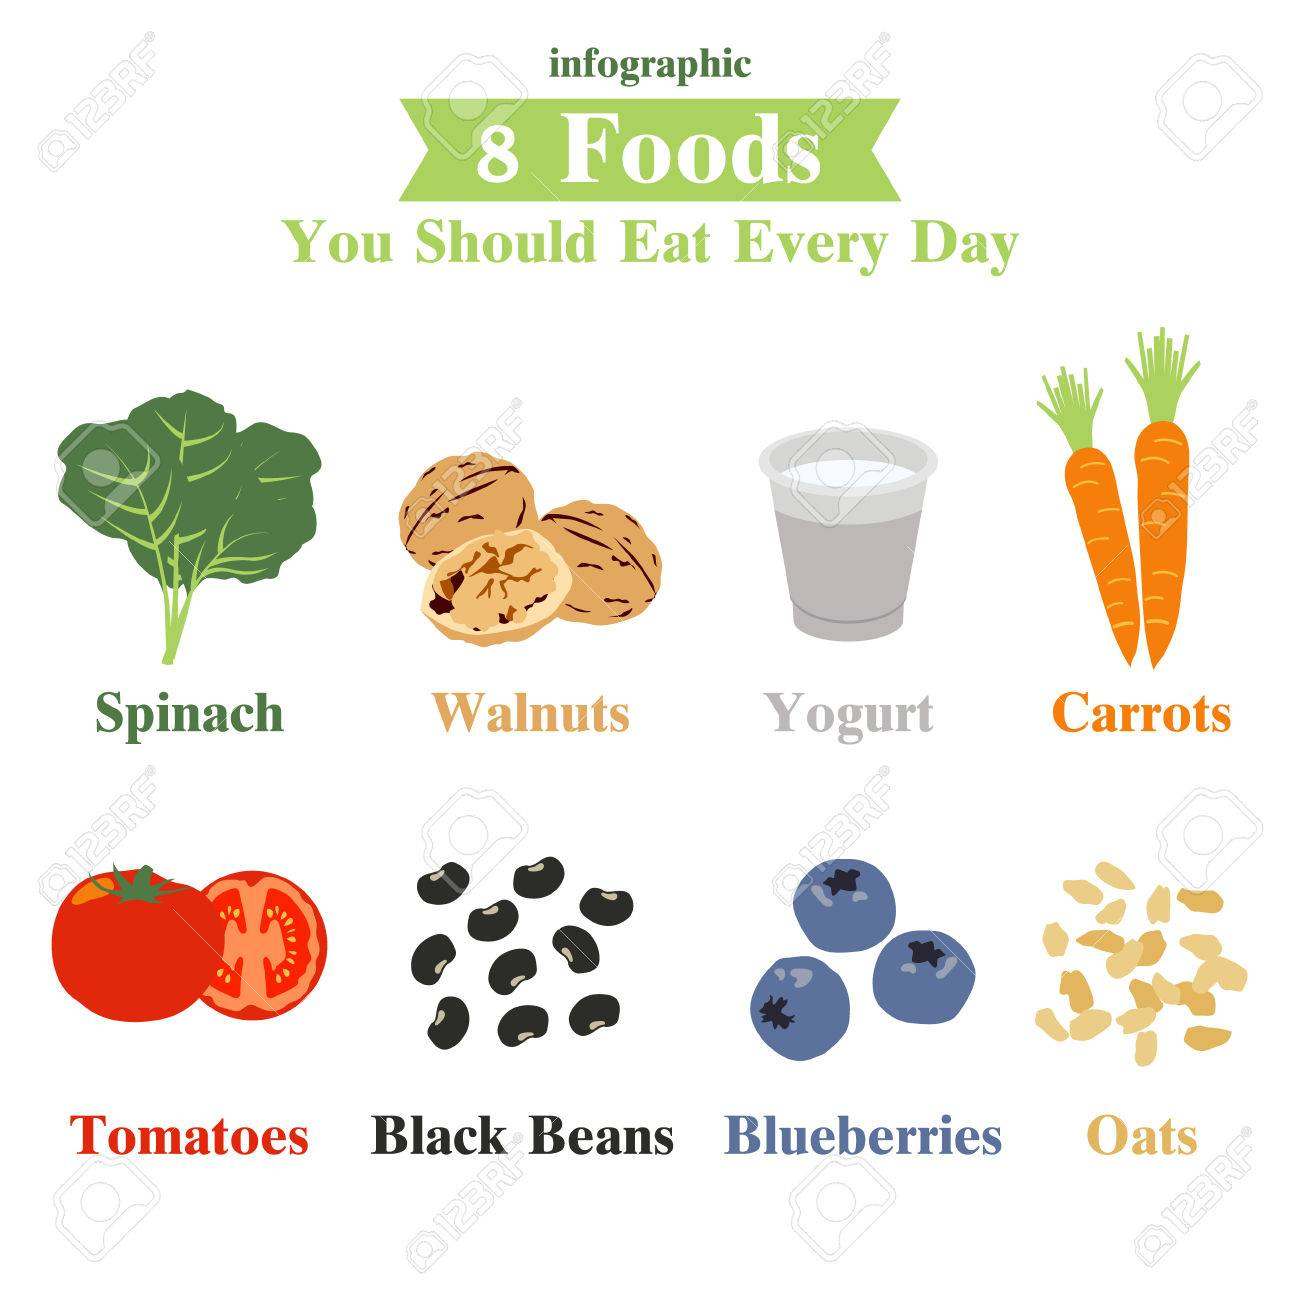 Foods You Can Eat Every Day to Lose Weight